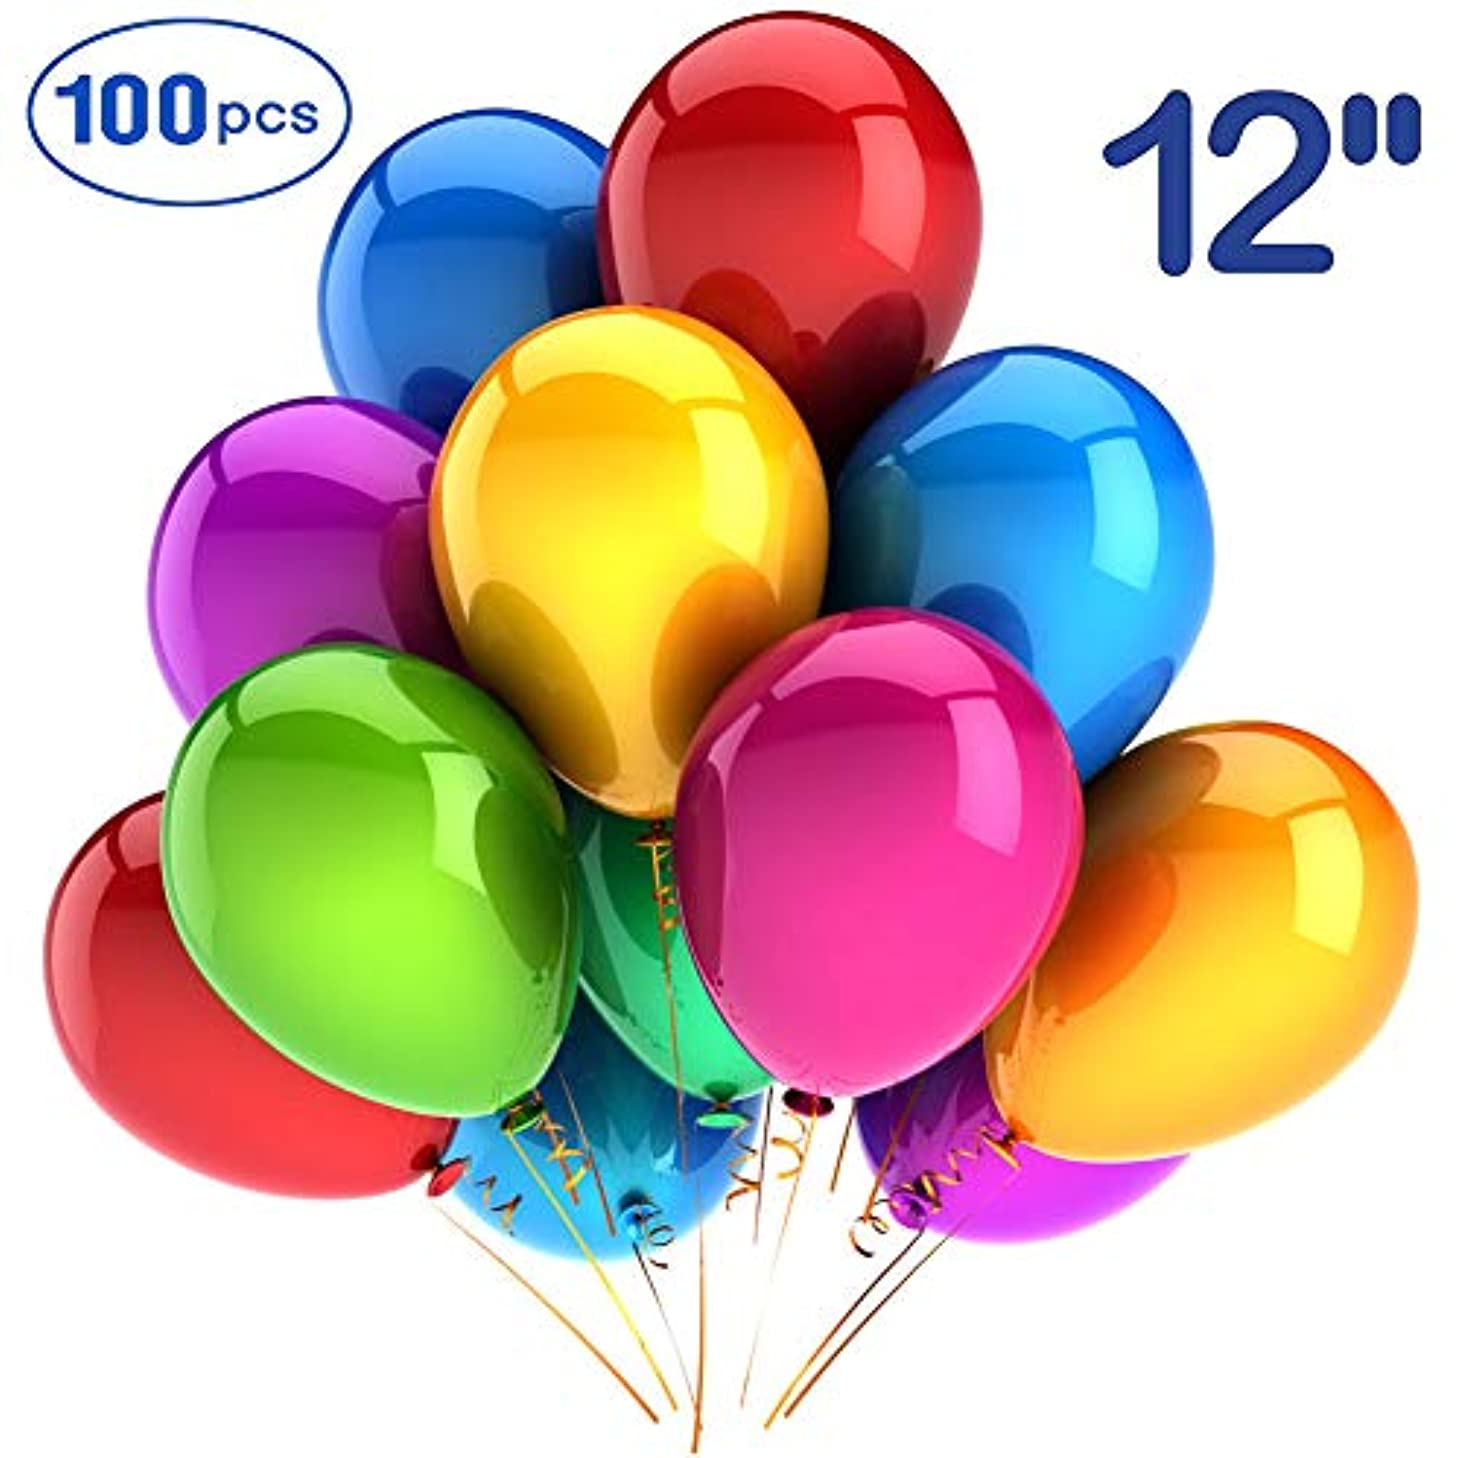 Party Balloons thick balloons 100 Pack 12 Inch Premium Assorted Color Rainbow Set Latex Helium Balloons for Party Birthday Weddings?